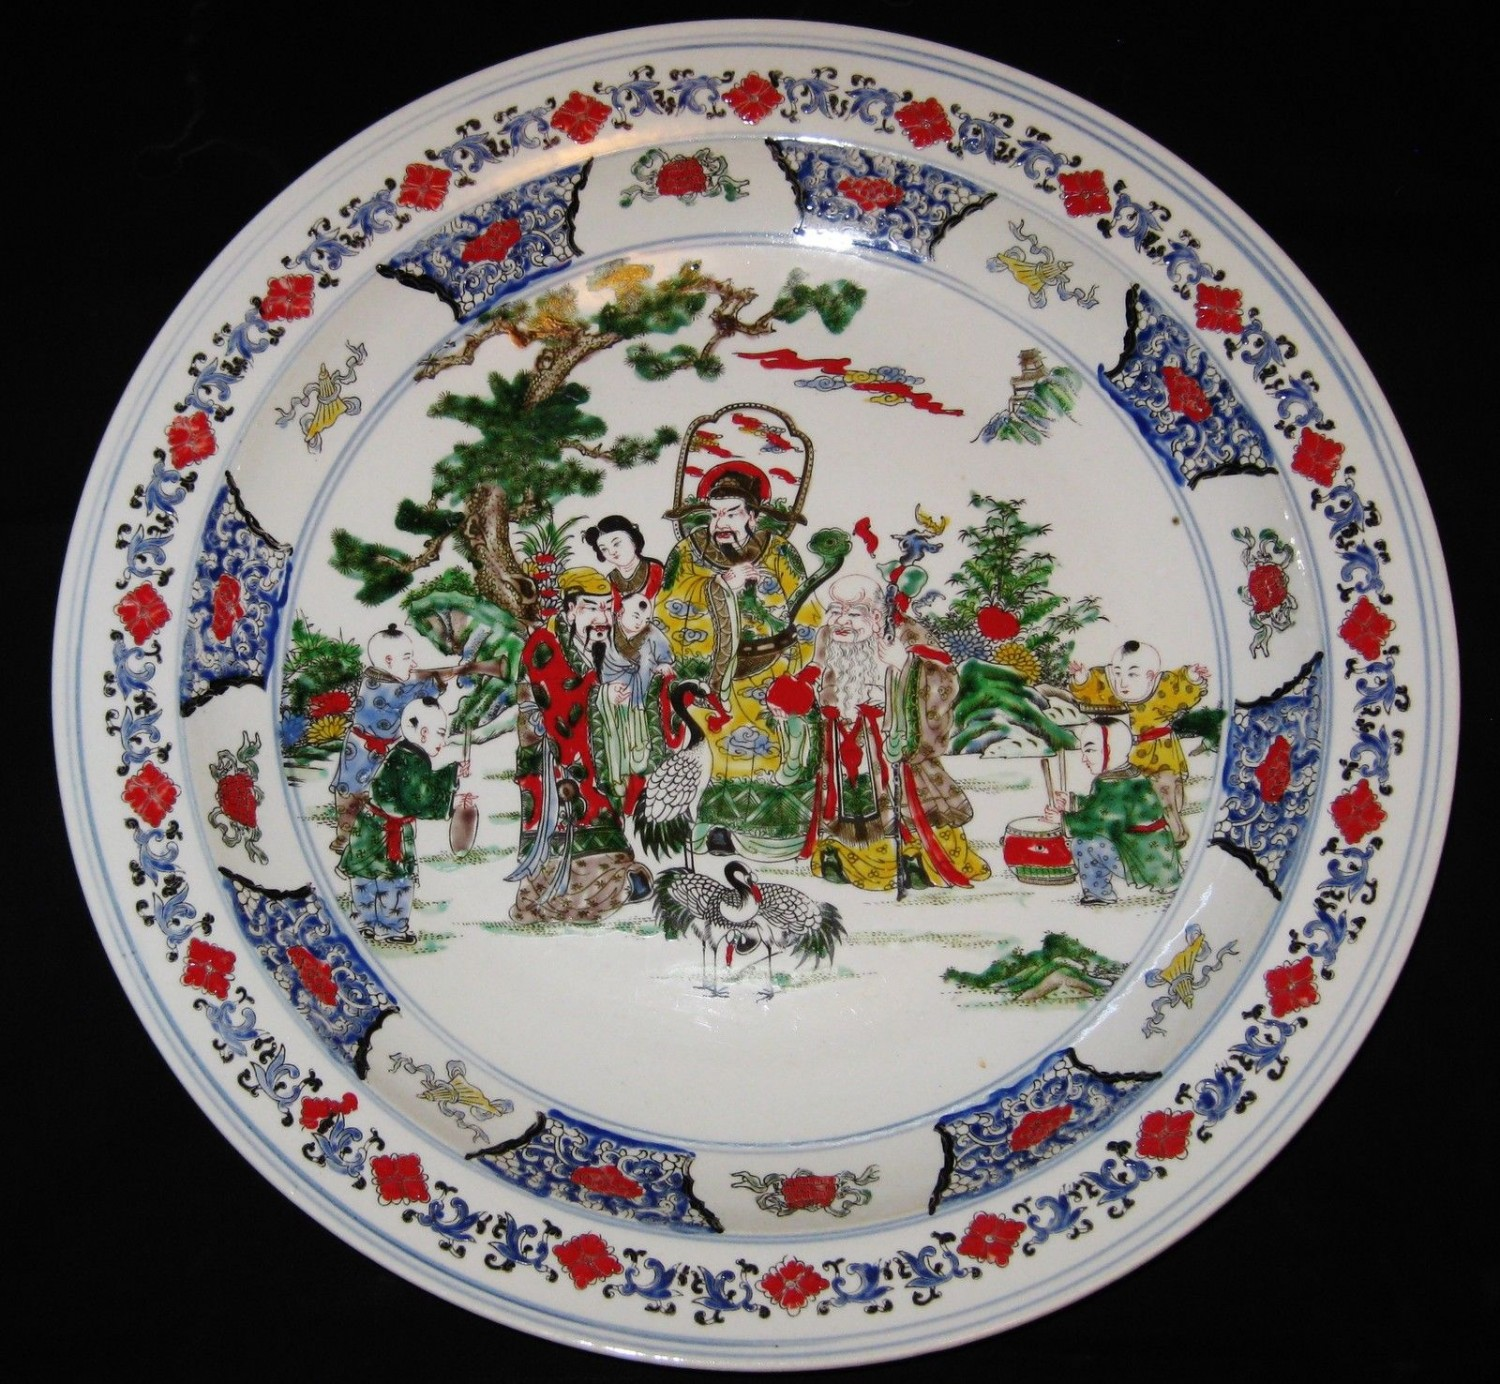 ANTIQUE BIG CHINESE PORCELAIN CHARGER 45 cm, HAND PAINTED KANG -XI MARK,